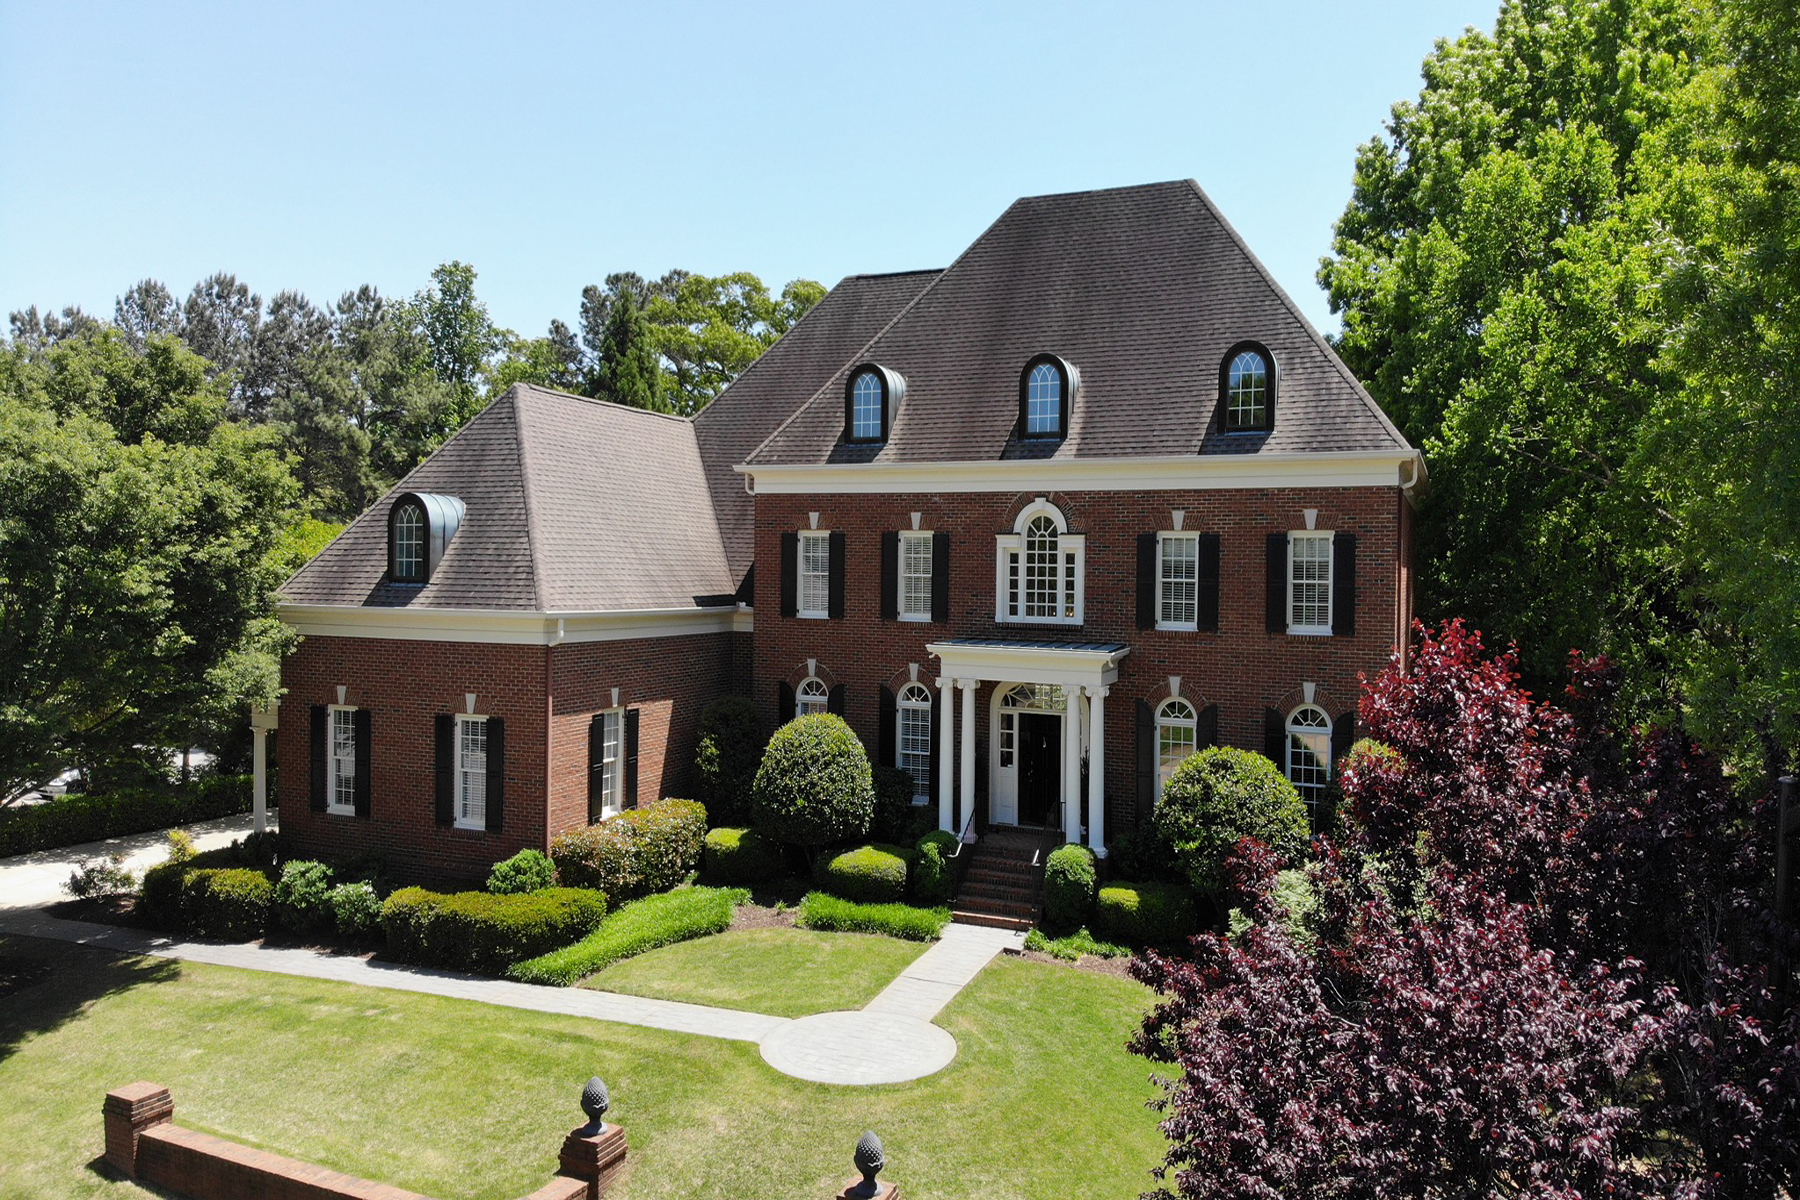 Single Family Home for Sale at Stately Brick Beauty 447 Langley Oaks Dr Marietta, Georgia 30067 United States